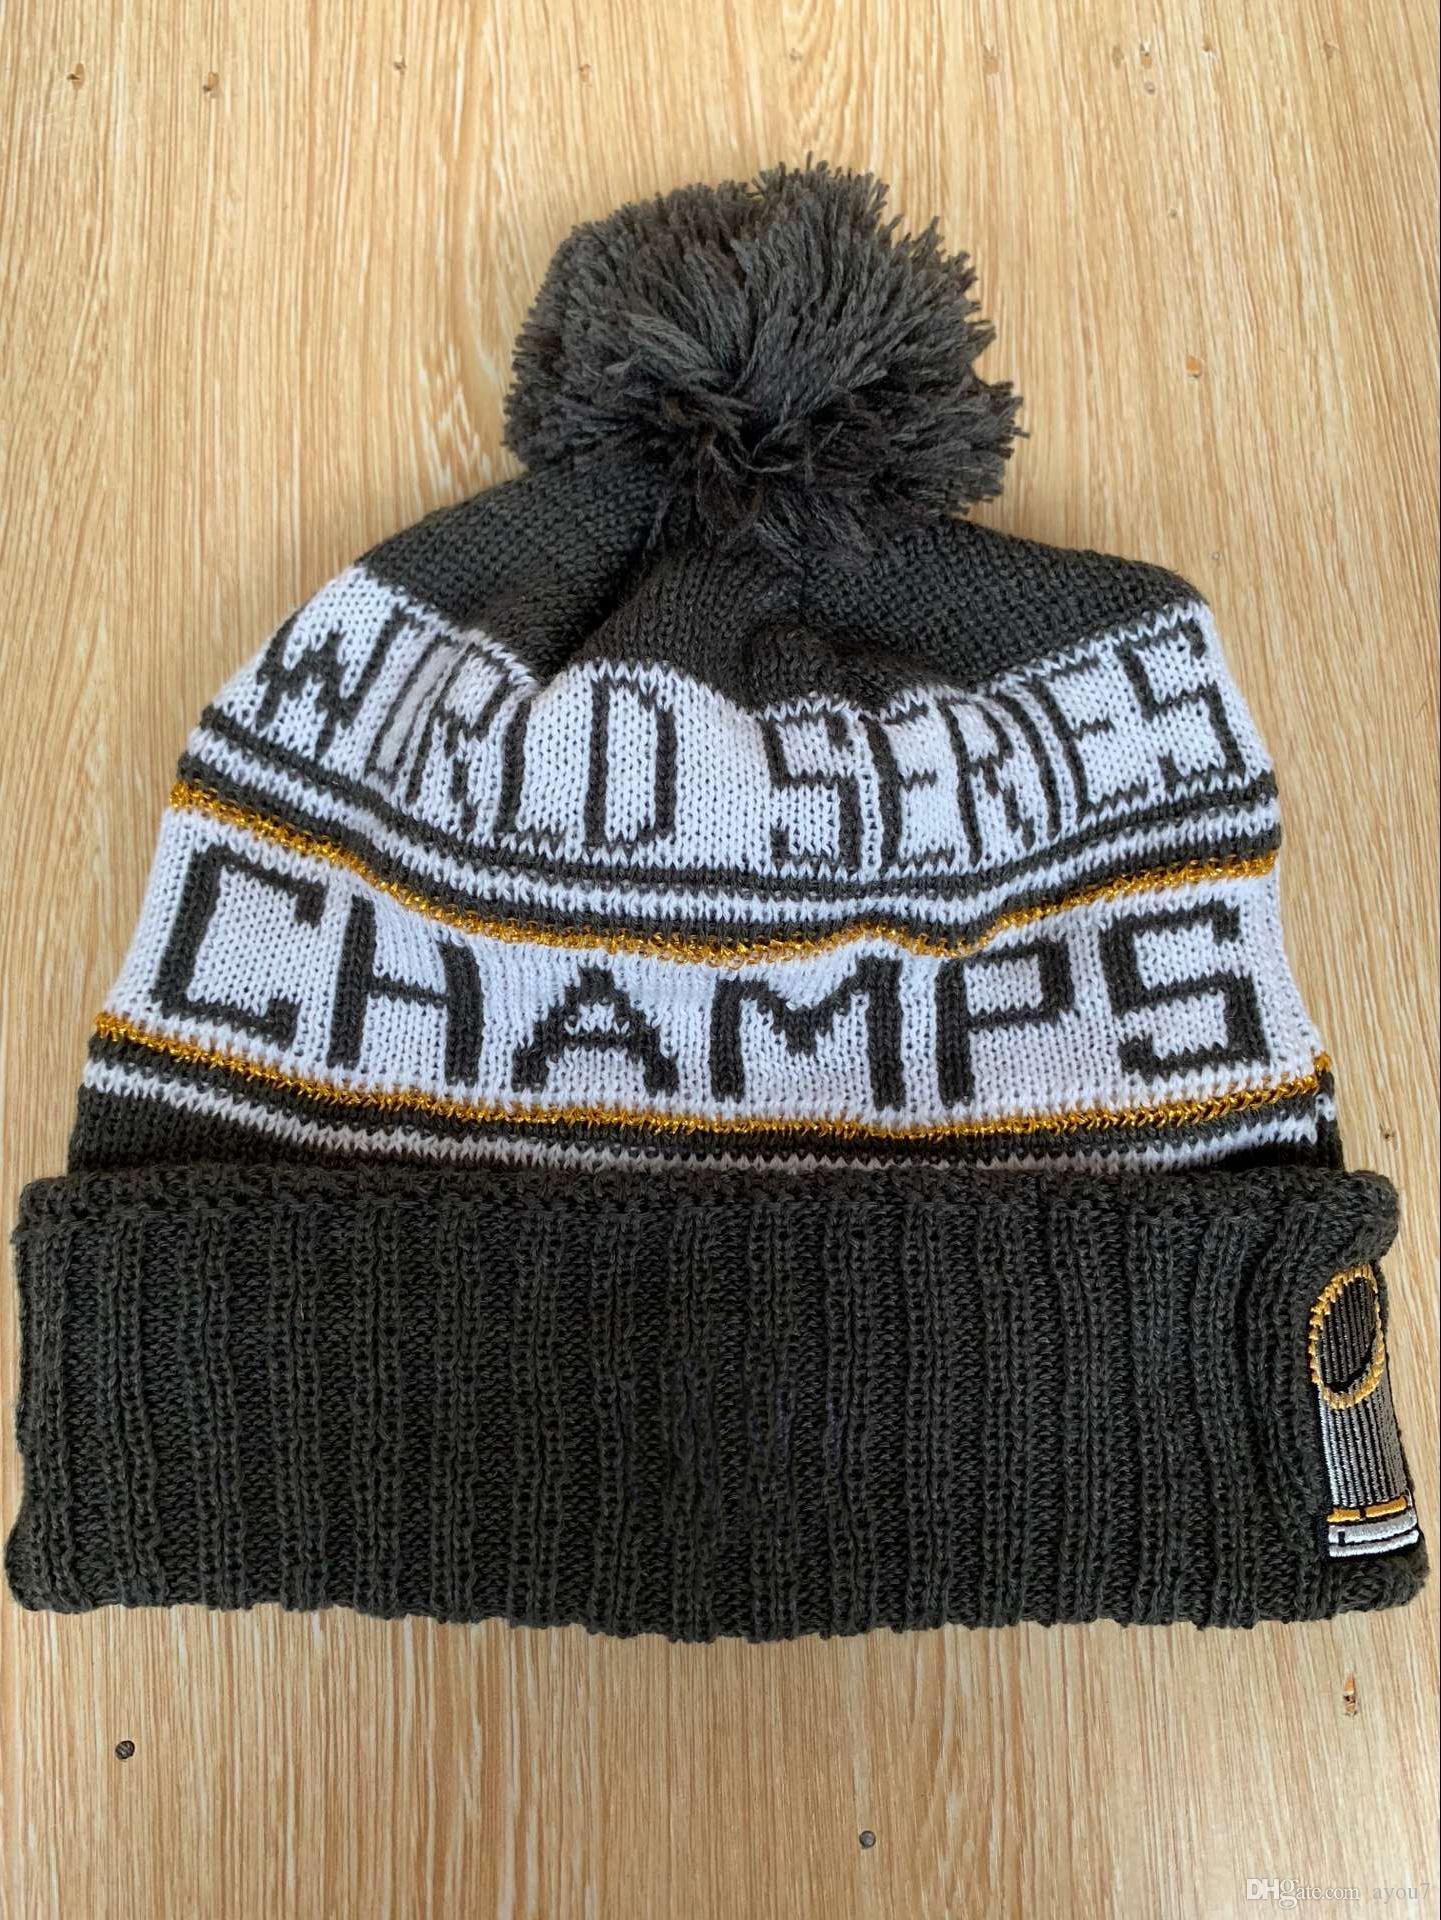 2018 Boston World Series Champs Baseball Beanie Boston Champs Beanie Boston World  Series Beanie Boston Wool Hat Online with  9.72 Piece on Ayou7 s Store ... ffa88a11f5b